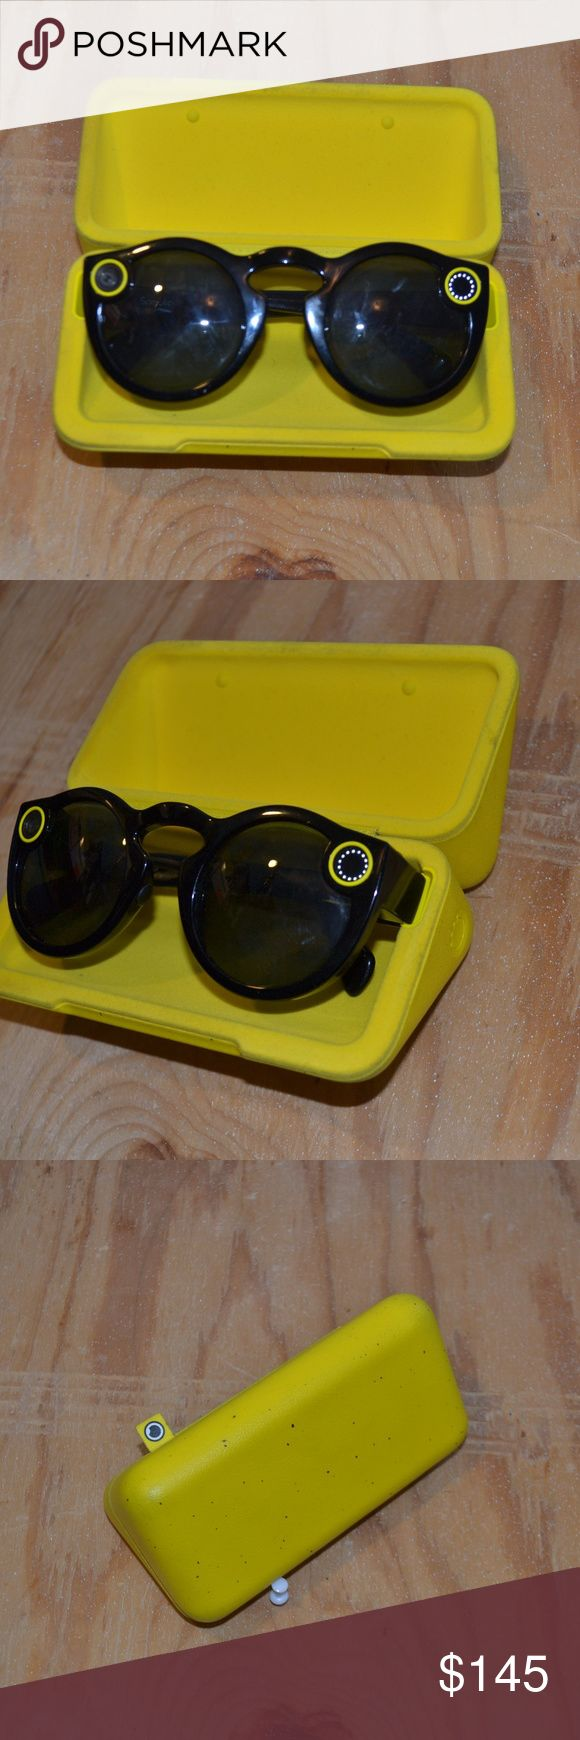 Snapchat sunglasses ✨NEW LISTING✨ Unisex | Snapchat glasses for fun on snapchat | 360 view | Great for heavy snapchat users or when going on special trips | First person perspective | Includes charging case & Charger | Charging case holds 5 full charges to recharge batteries Accessories Glasses